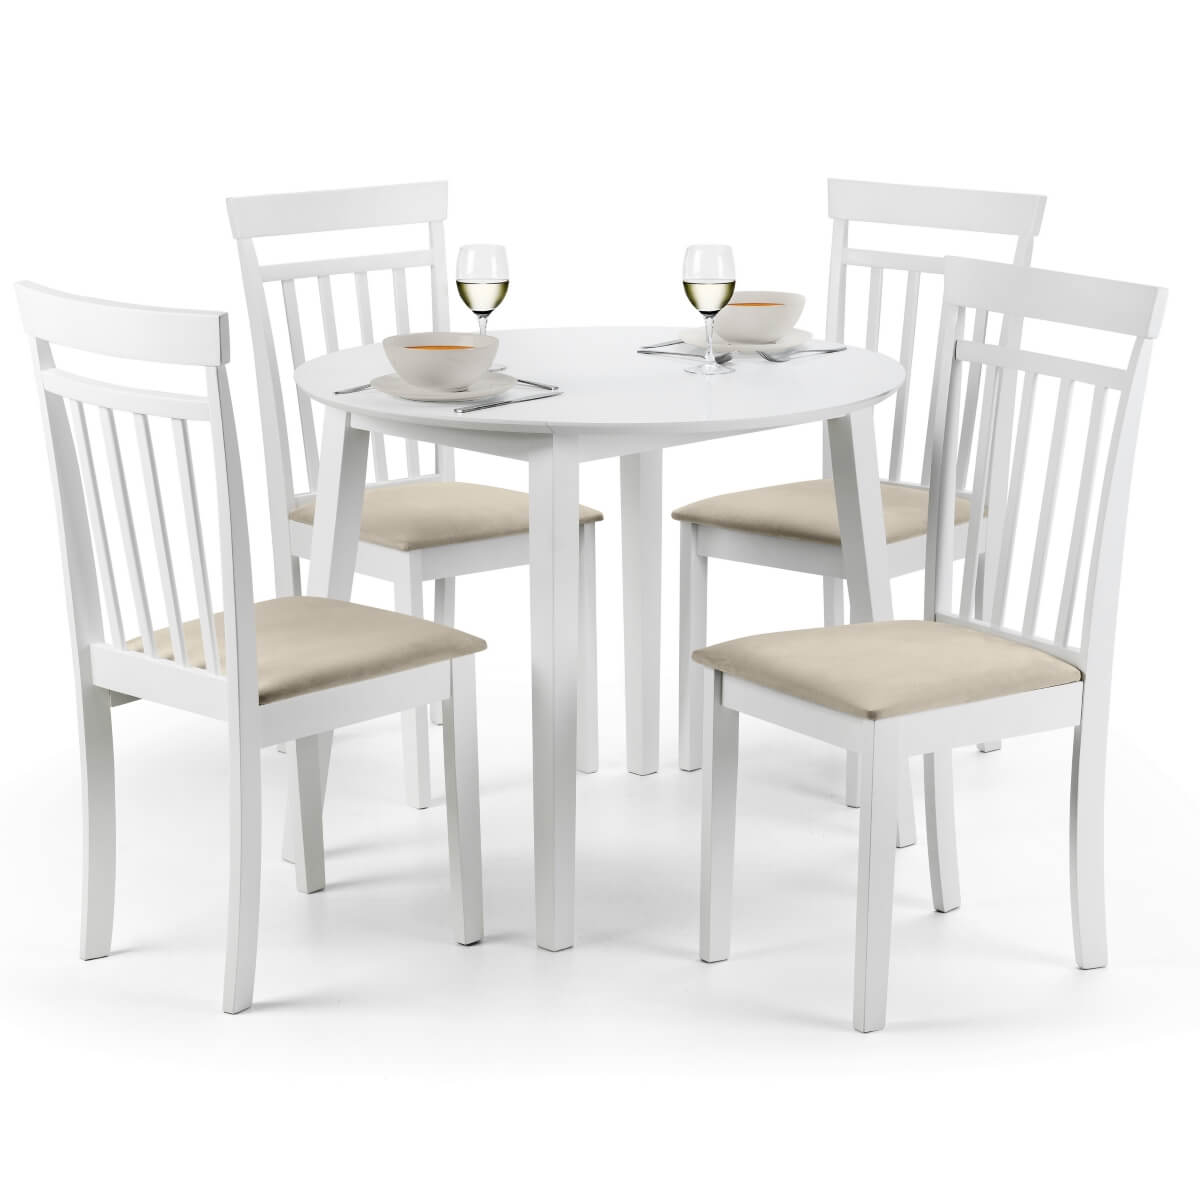 Dining Set Coast Dining Table And 4 Dining Chairs In White Coa005 within sizing 1200 X 1200